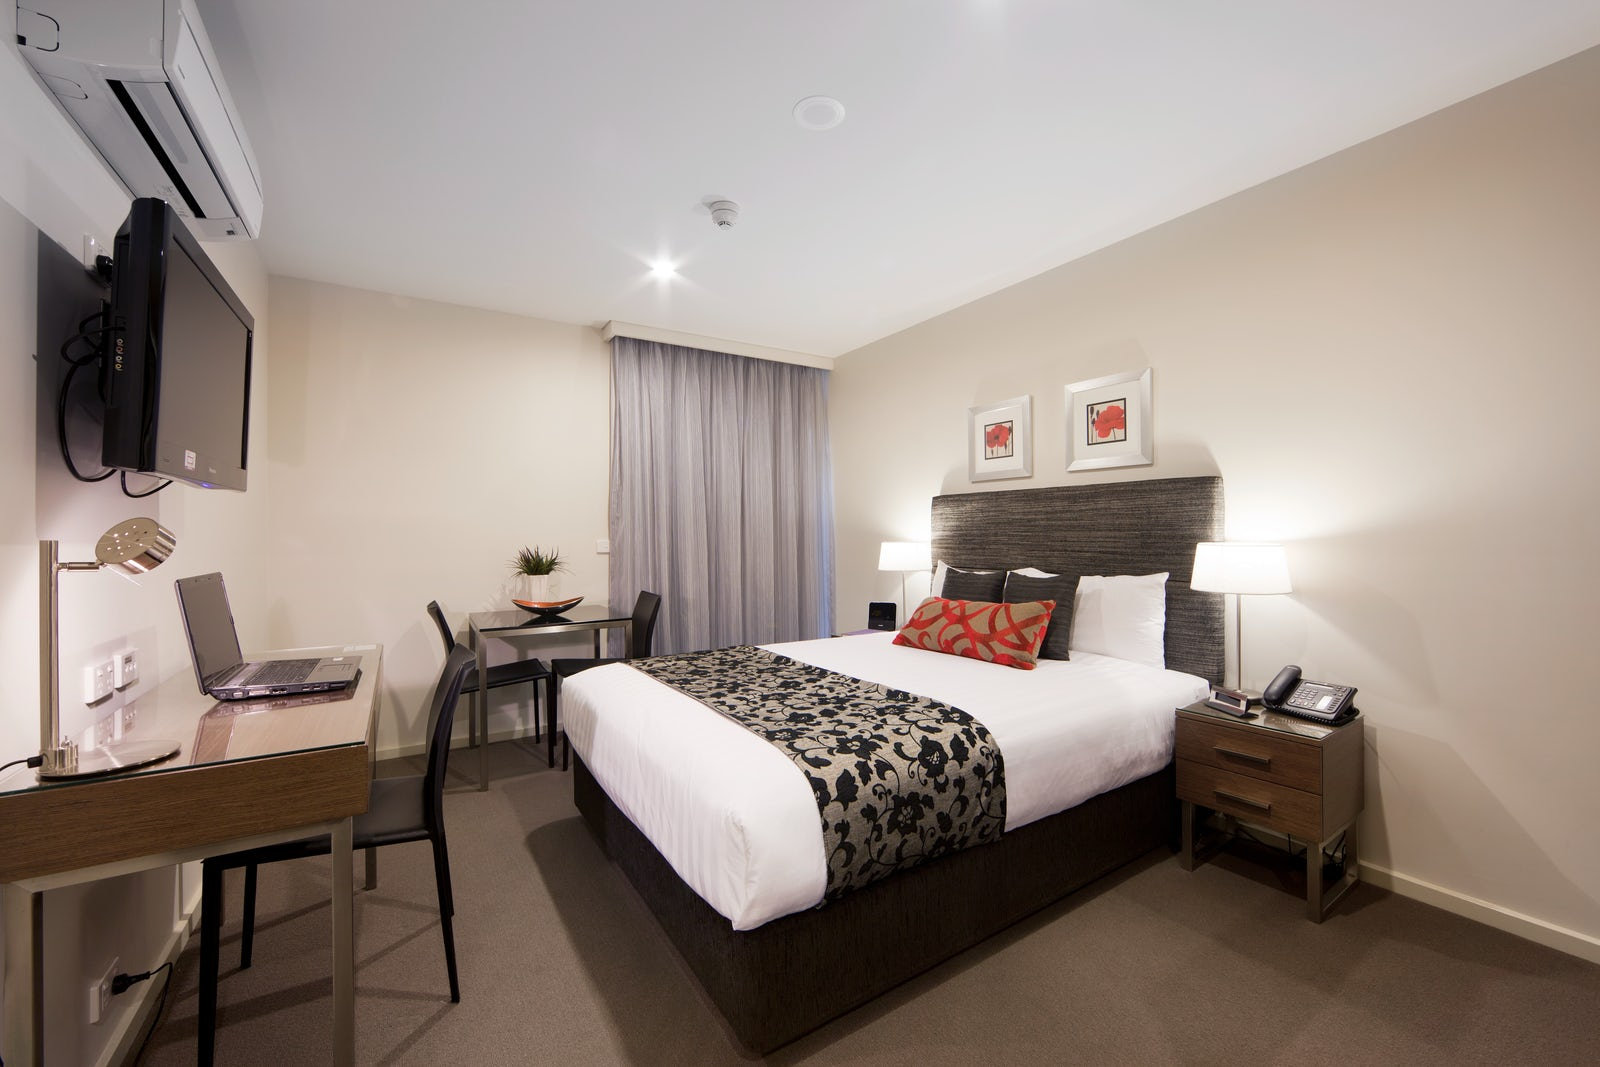 An image of a guests quarters at the Aria Hotel located in Canberra CBD